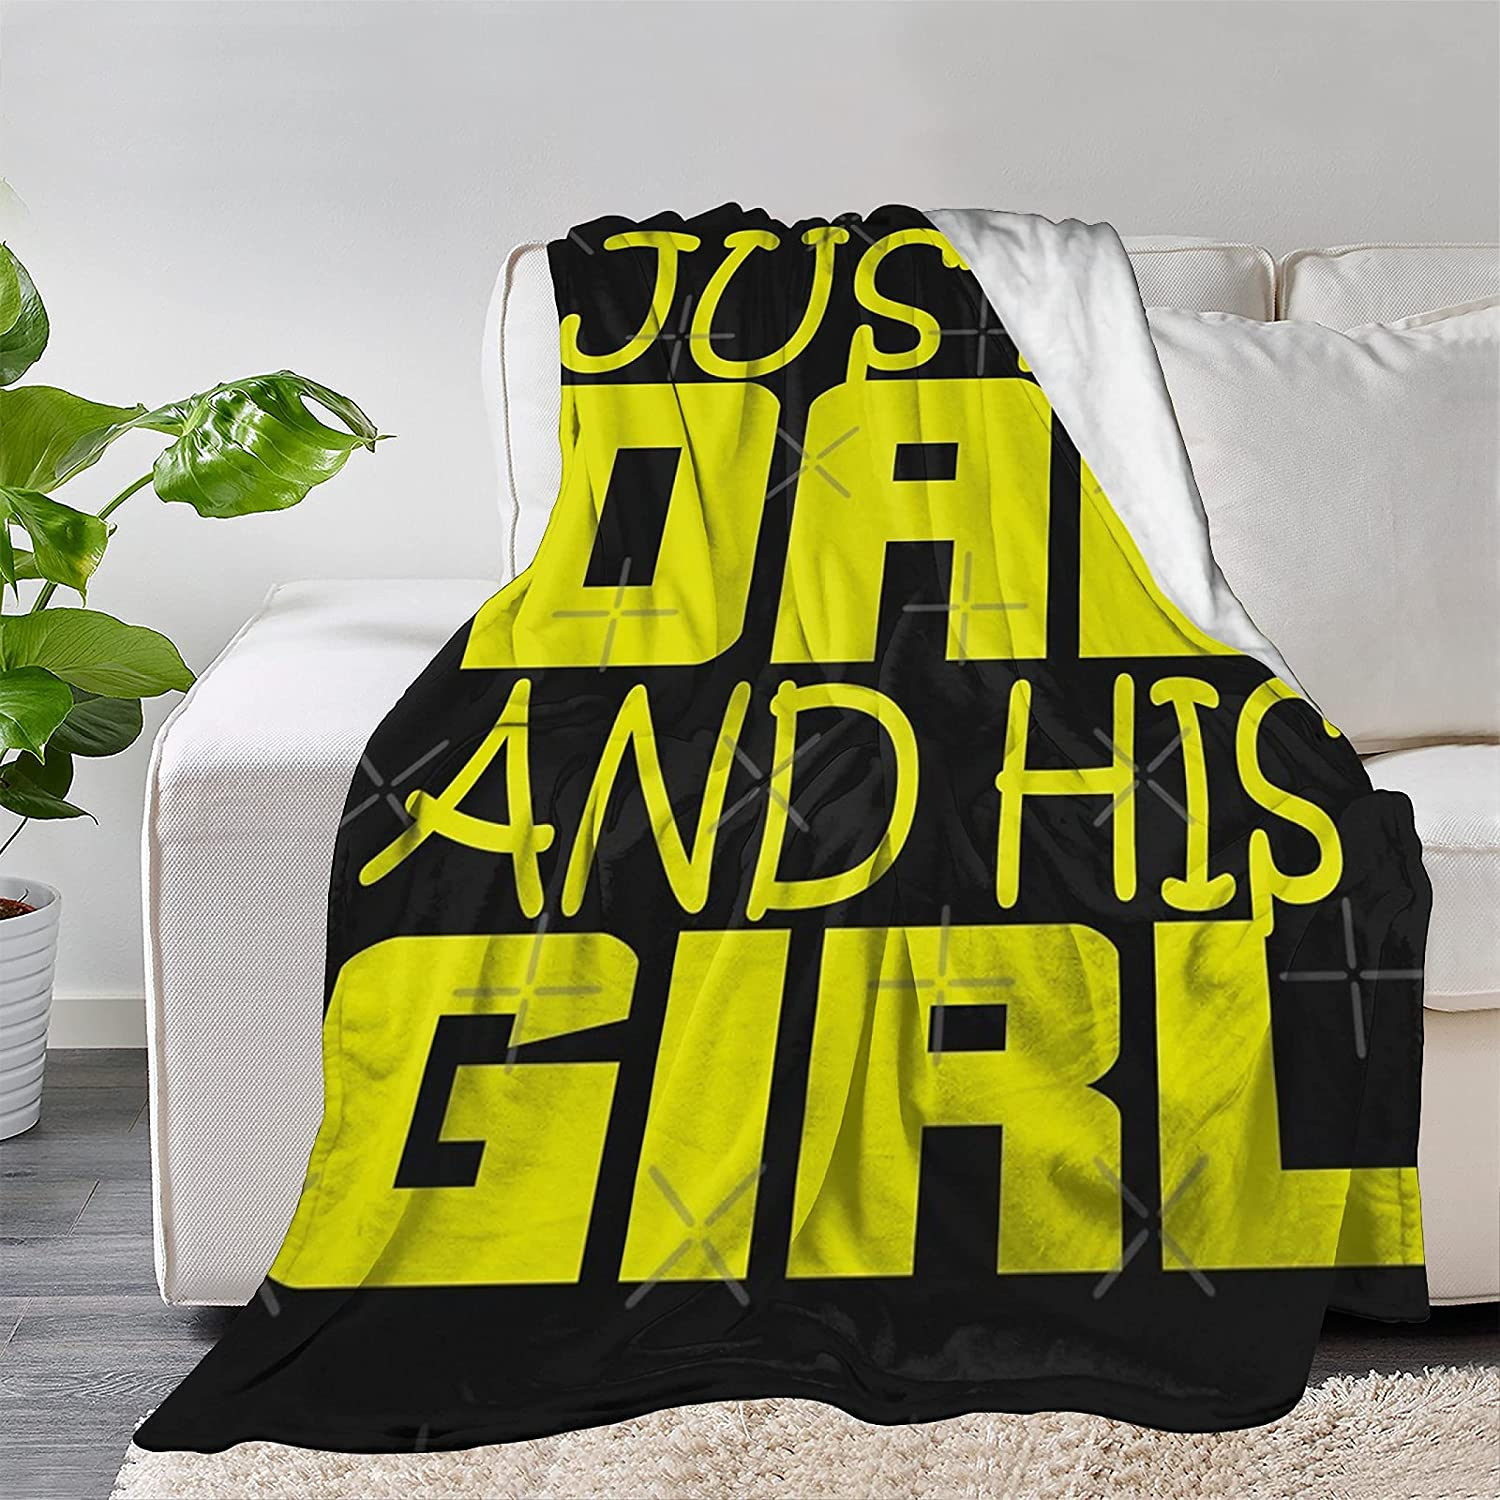 FUNDESIGN 5 ☆ very popular Just A Dad and His Ultra Flannel discount S Girl Blanket Throw